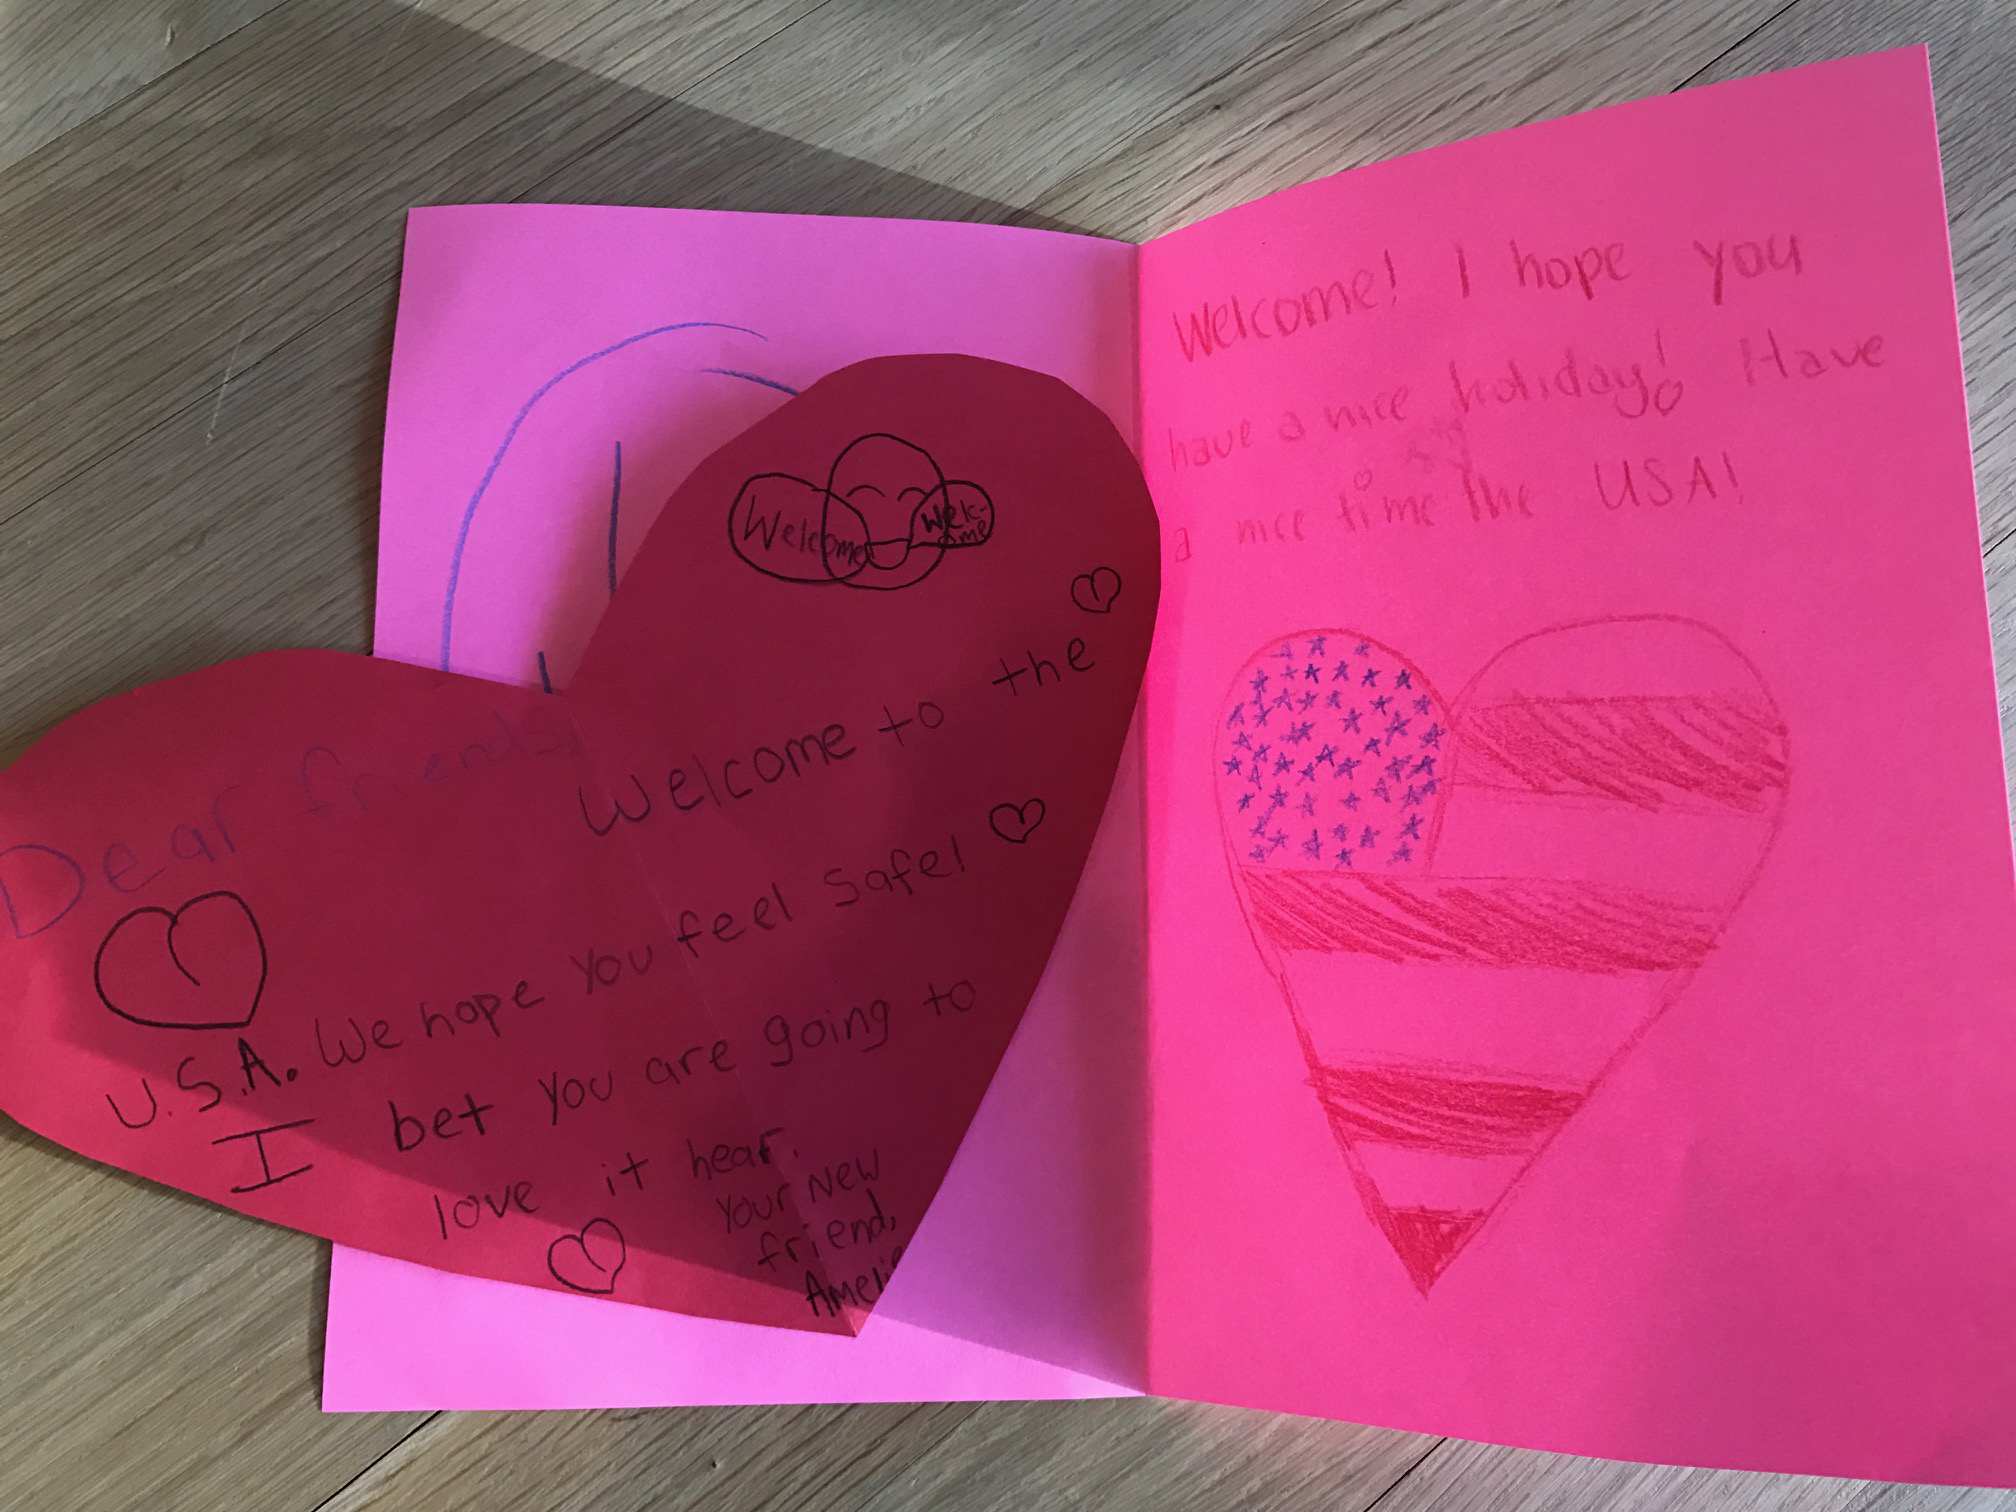 Stuart girls welcome children with valentines day cards stuart girls made inspiring cards and hearts with encouraging and welcoming words thank you to stuart parent carlyne beverly for delivering our valentines m4hsunfo